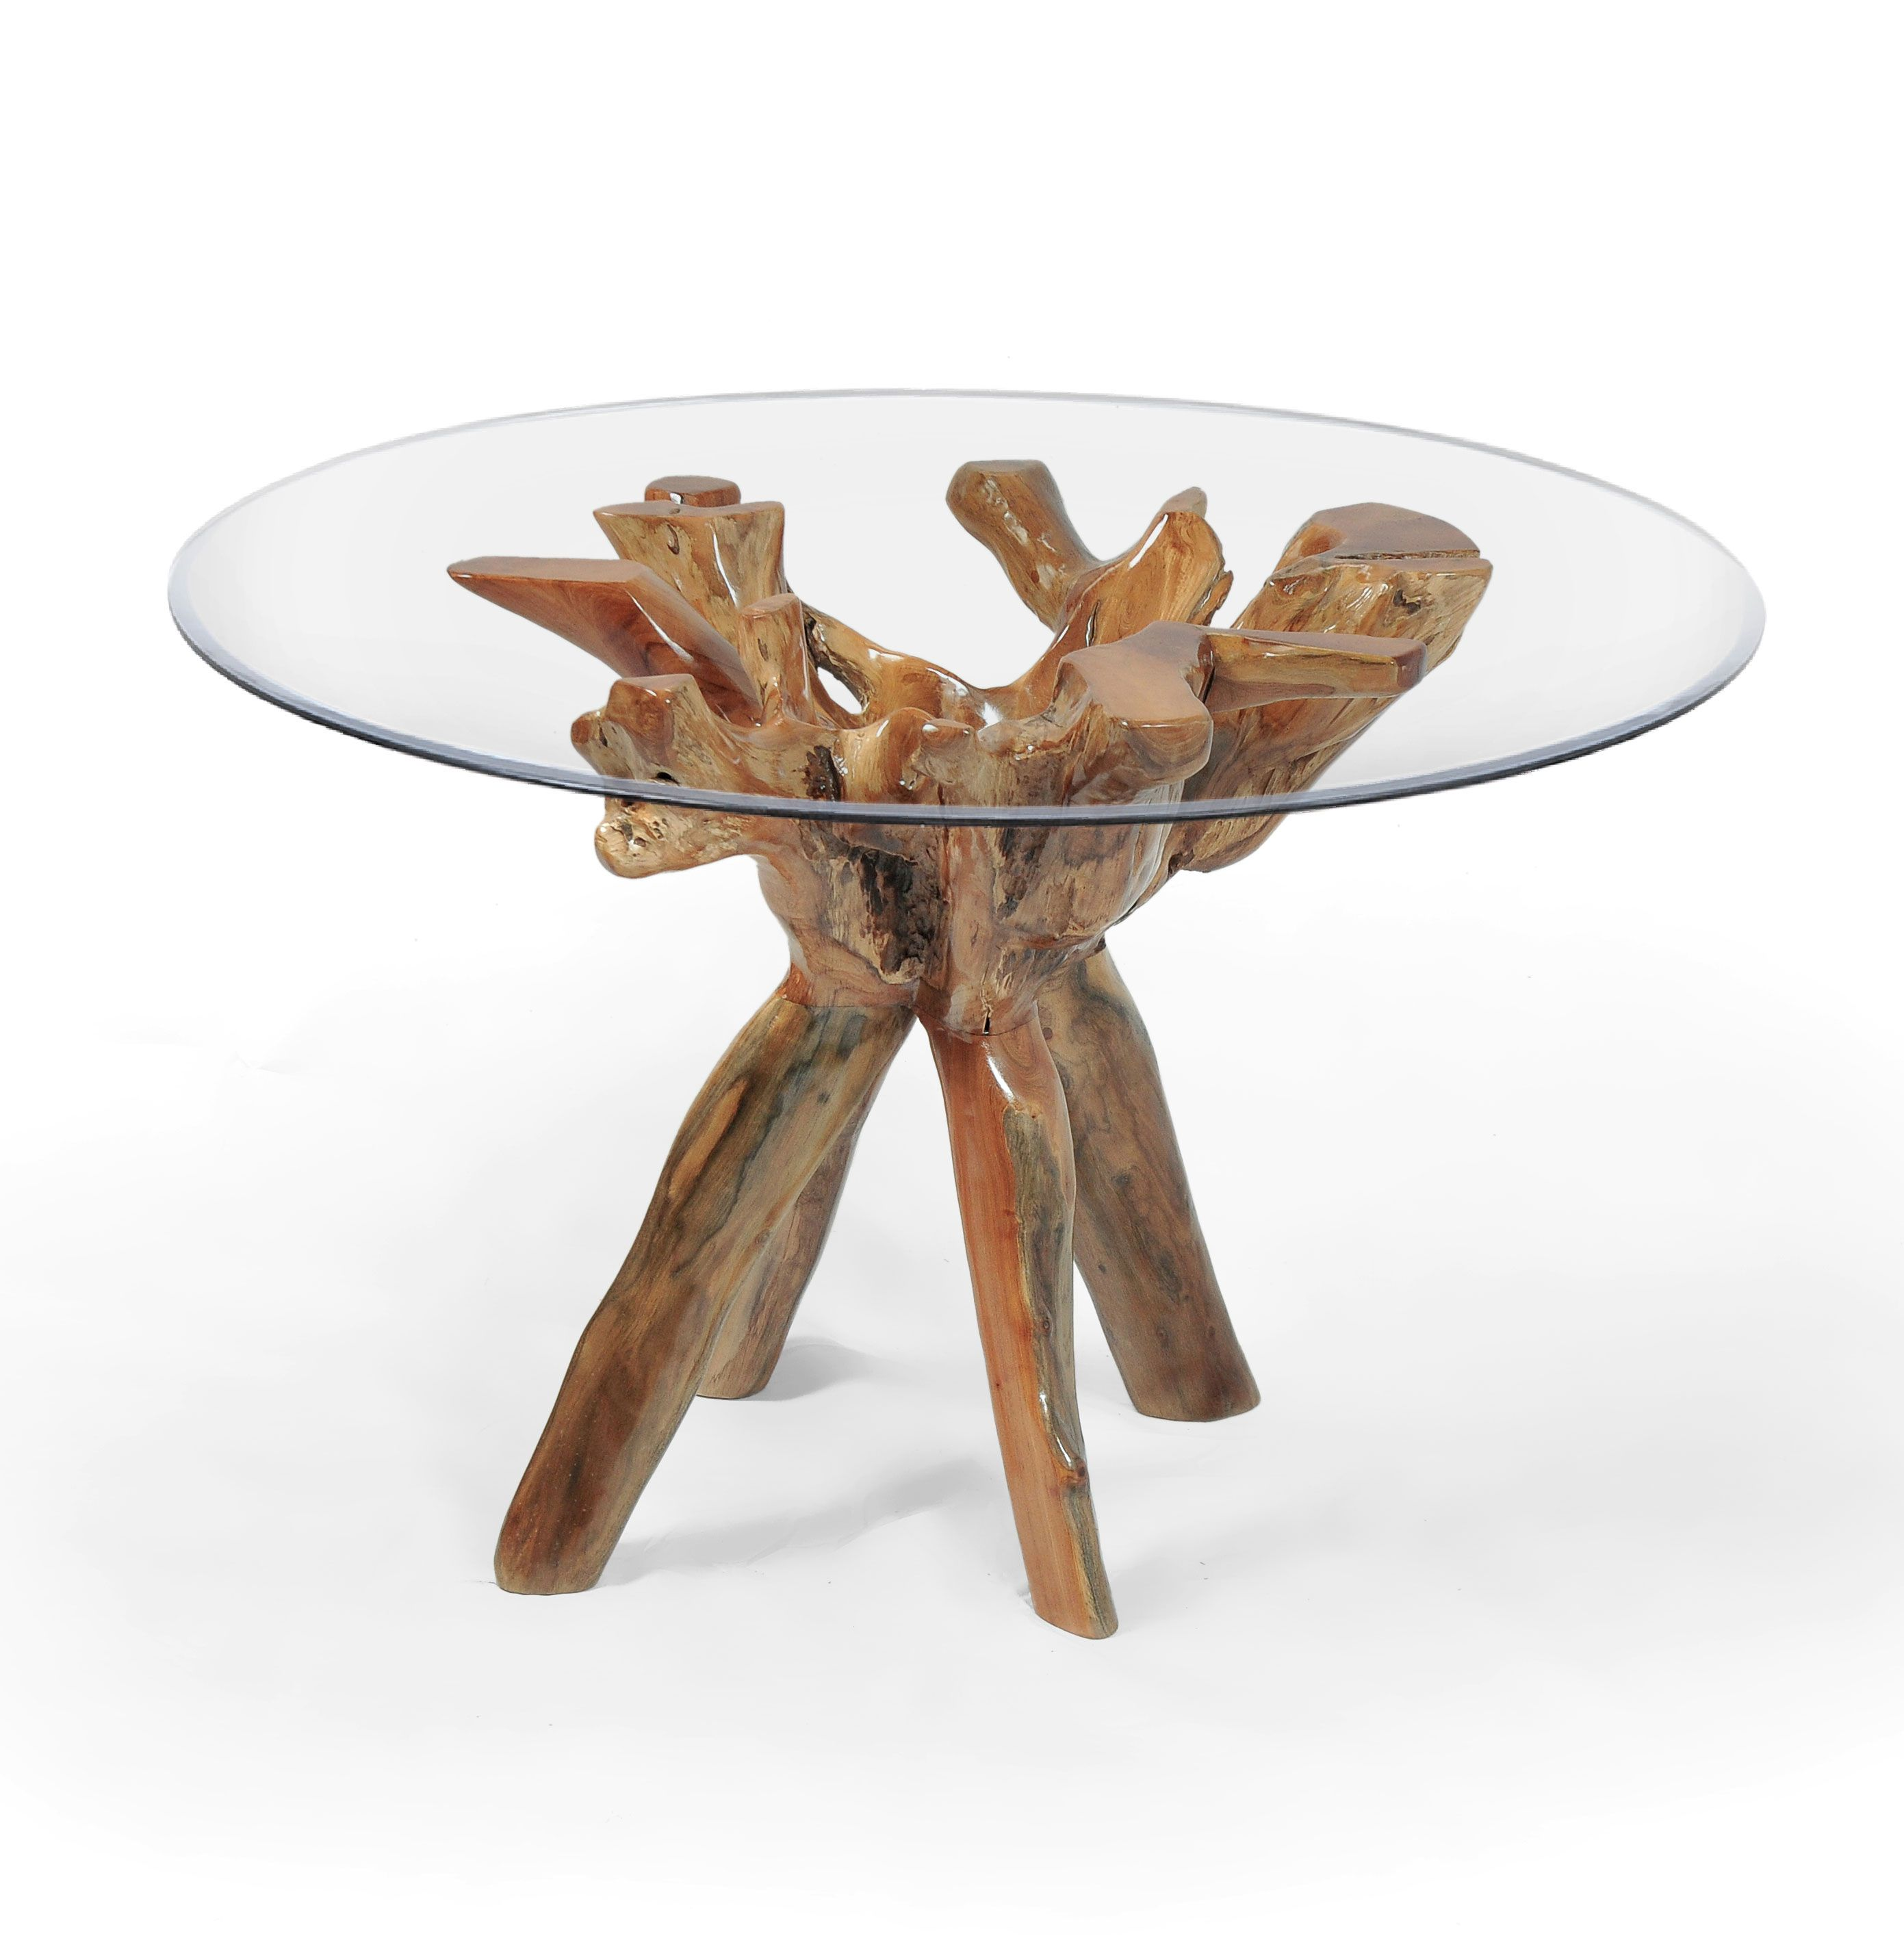 Teak Wood Root Bar Table Including 47 Inch Glass Top By Chic Teak Only 933 33 Teak Wood Teak Teak Rocking Chair